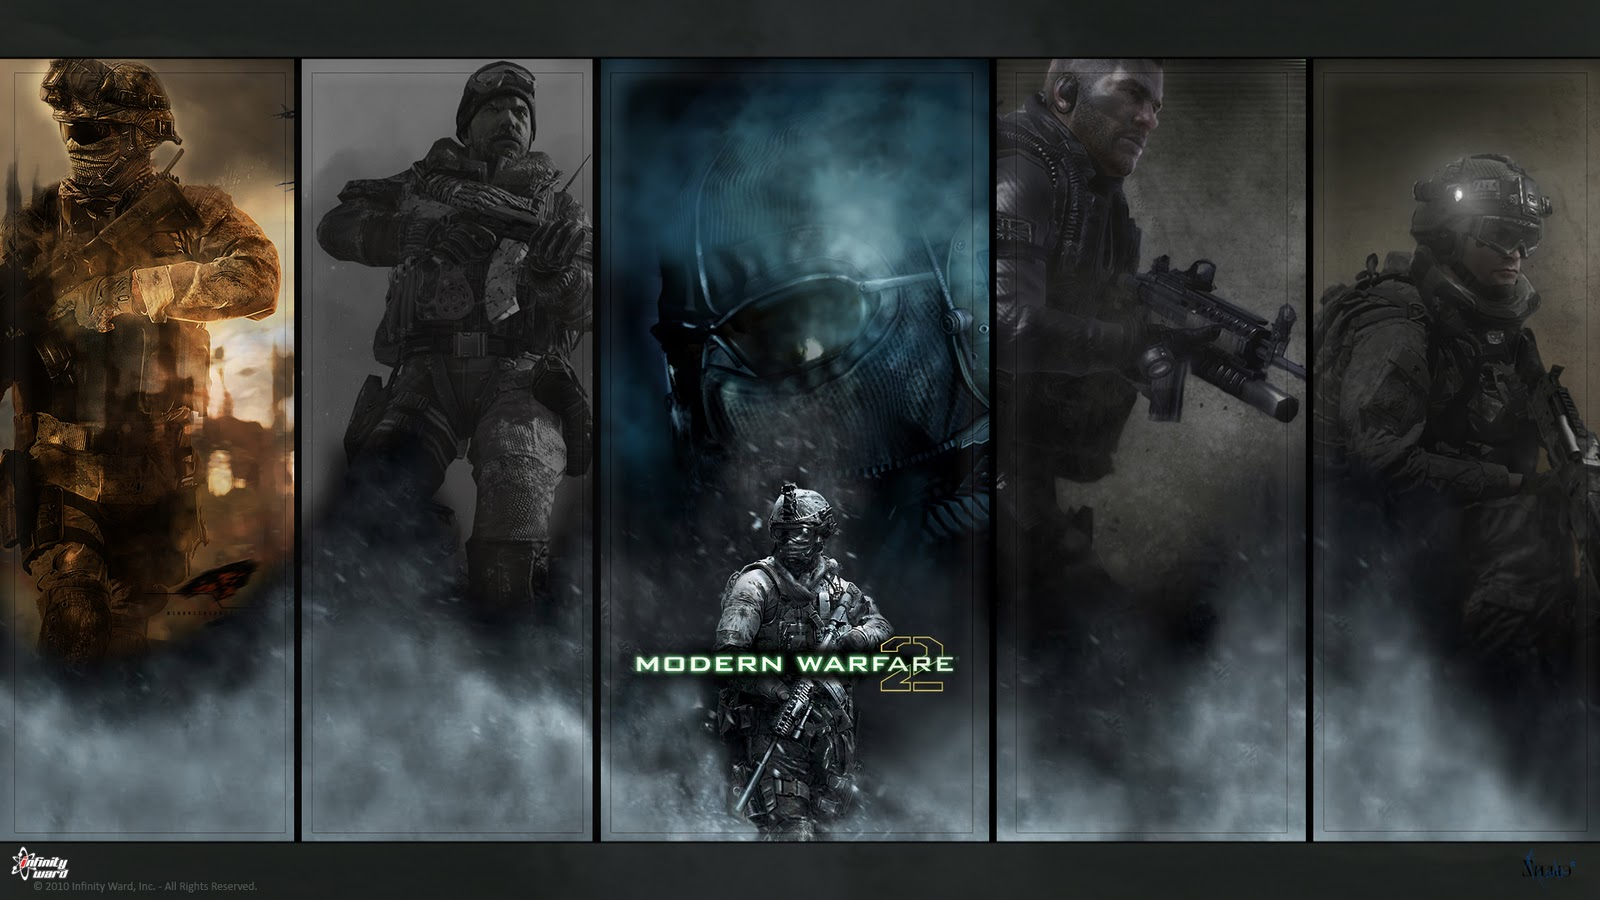 Modern Warfare Changed The Course Of War Games Again It Made History For Its Sales On Latest Installment MW3 According To Some People Surpasses